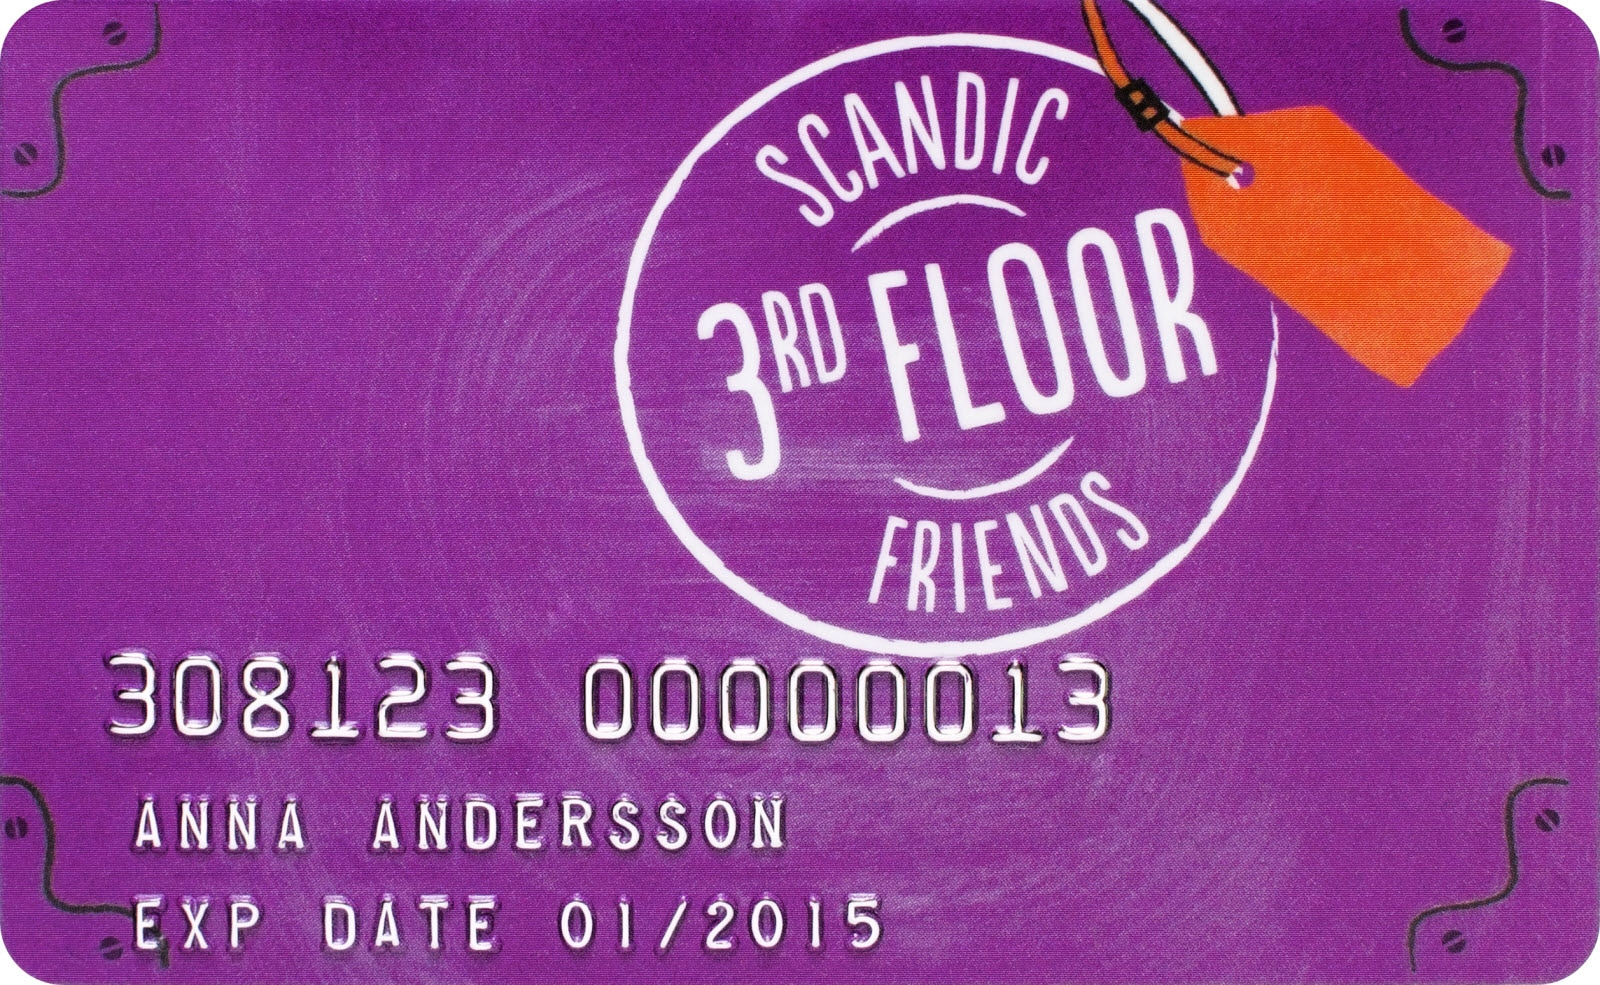 Scandic Friends 3rd floor